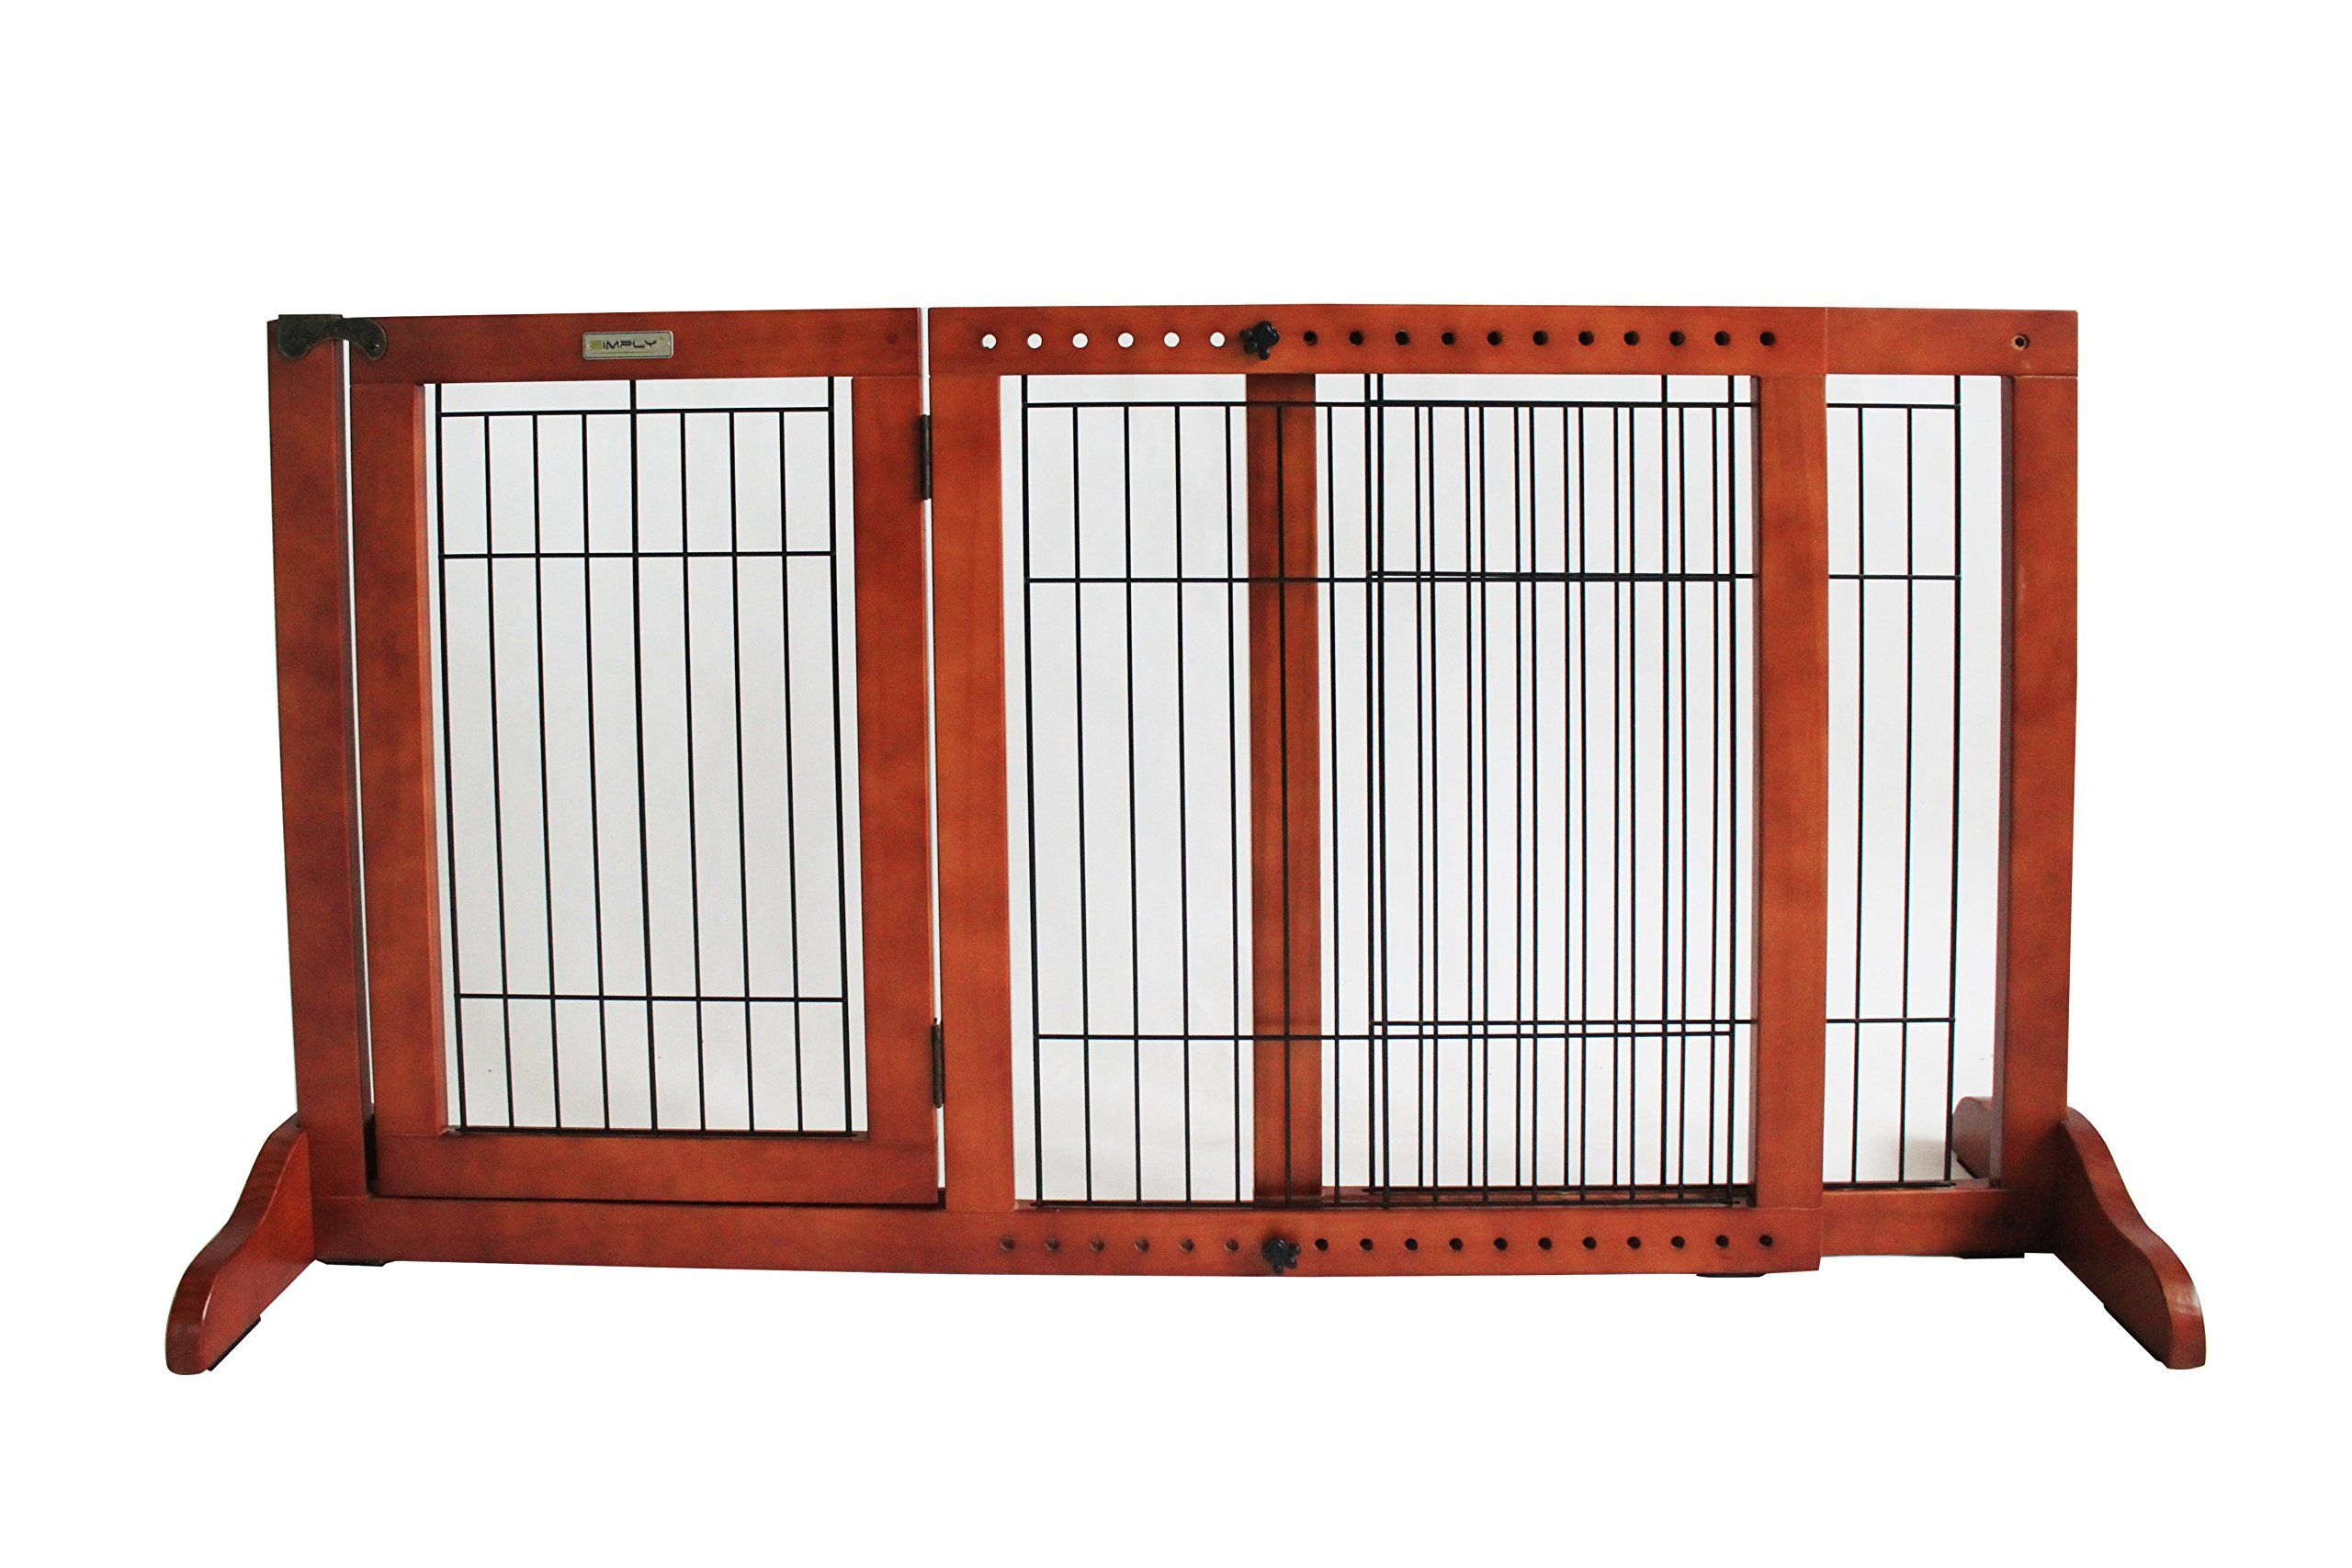 Simply Plus Wooden Pet Gate Freestanding Pet Dog Gate For Indoor Home And Office Use Keeps Pets Safe Easy Set Up No Tools In 2020 Wooden Pet Gate Pet Gate Dog Gate